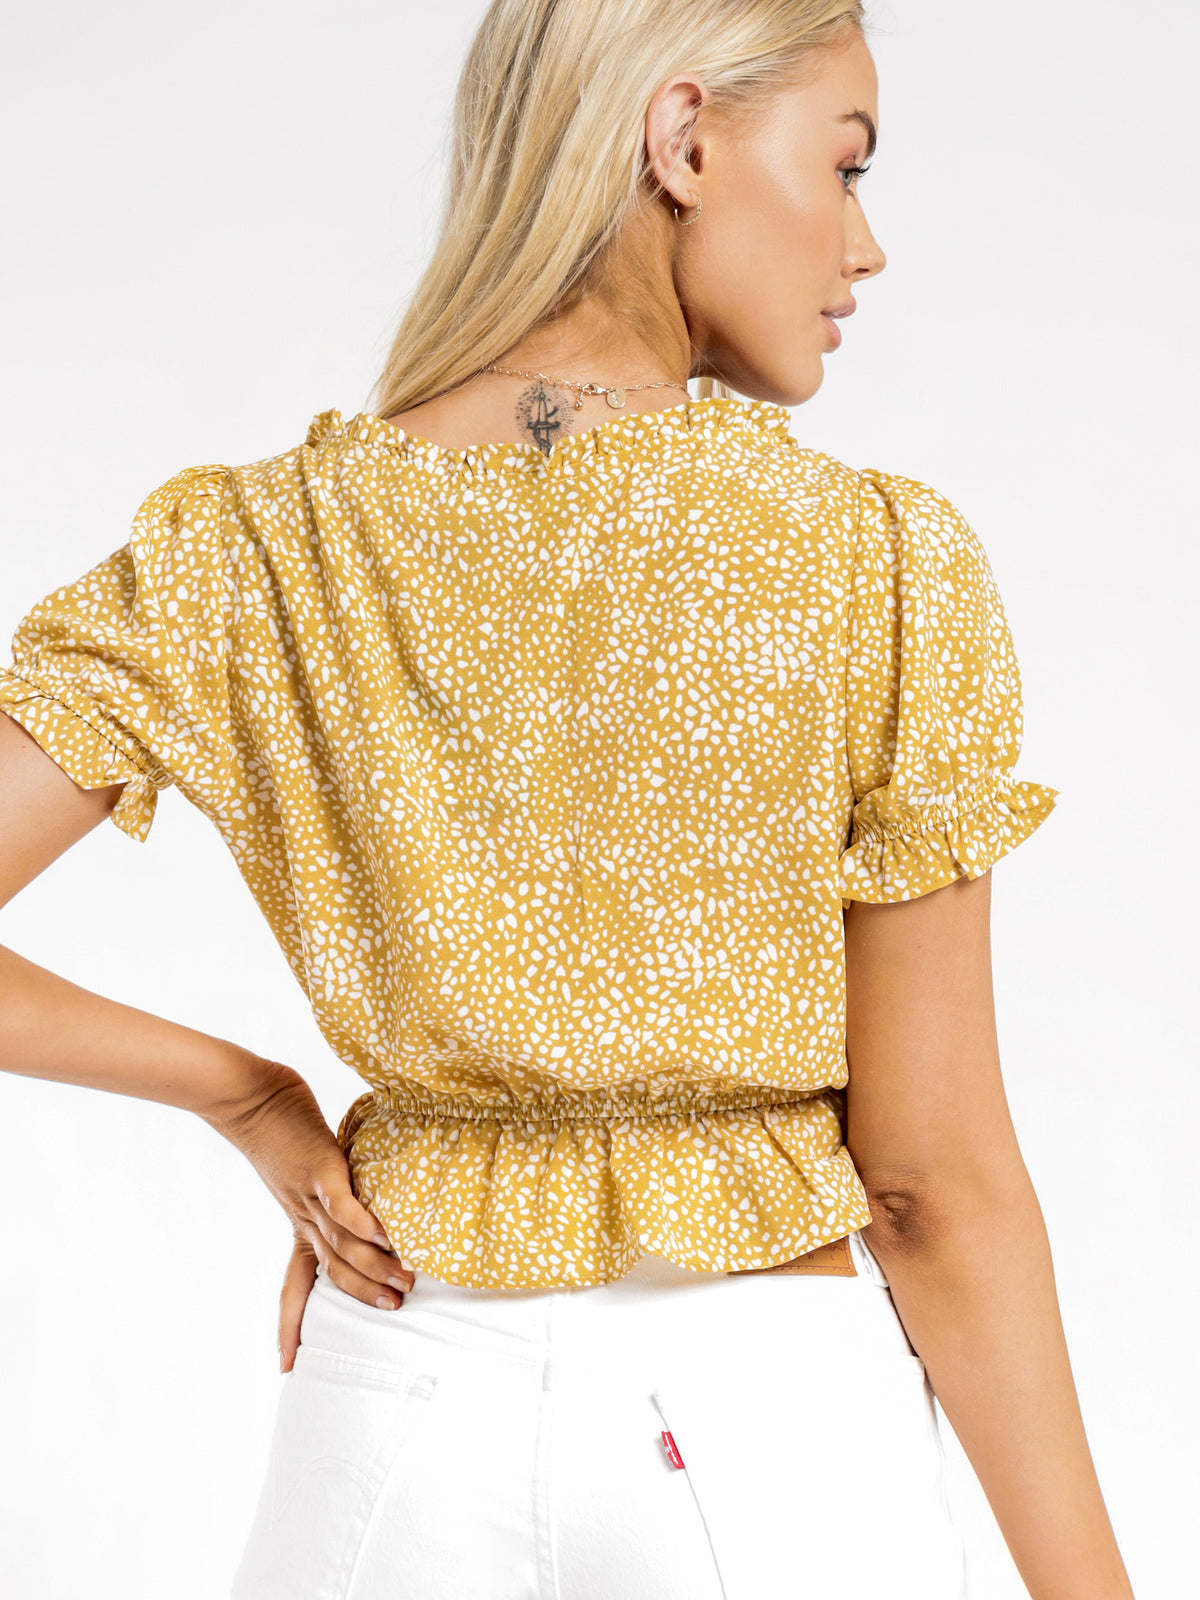 Cosette Elastic Top in Yellow Spot